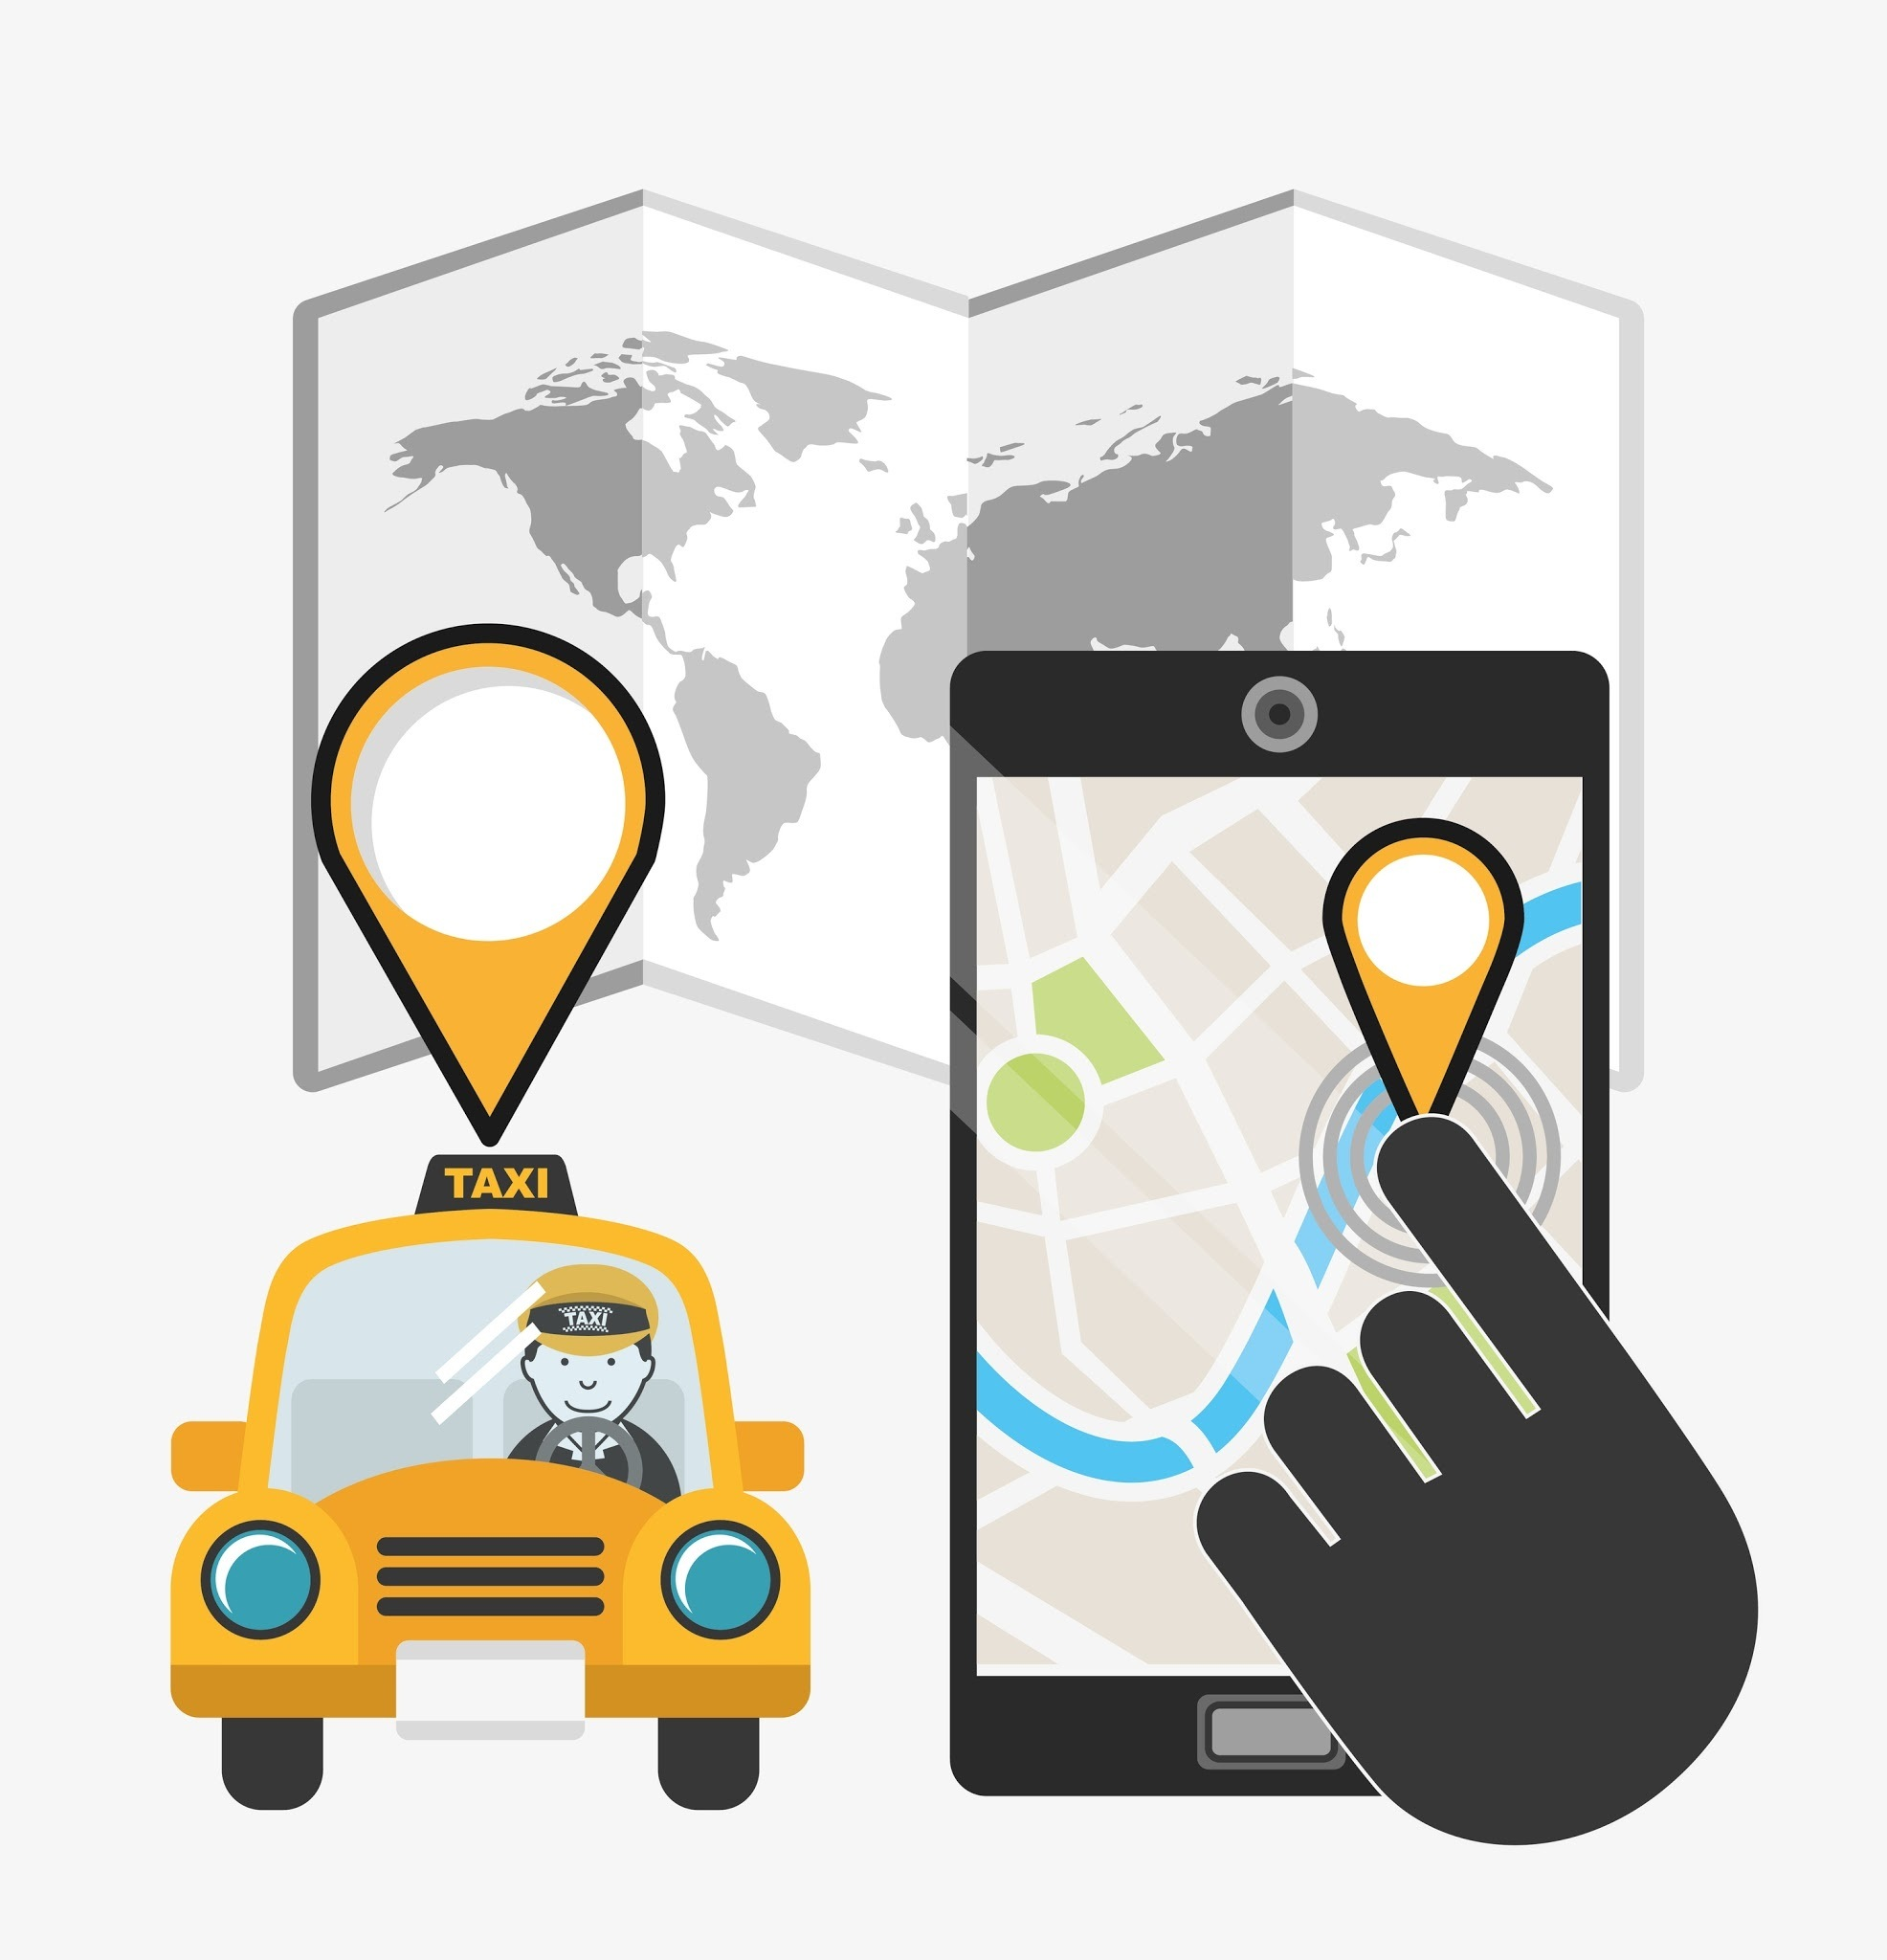 How much does it cost to make an Uber clone app? - Quora